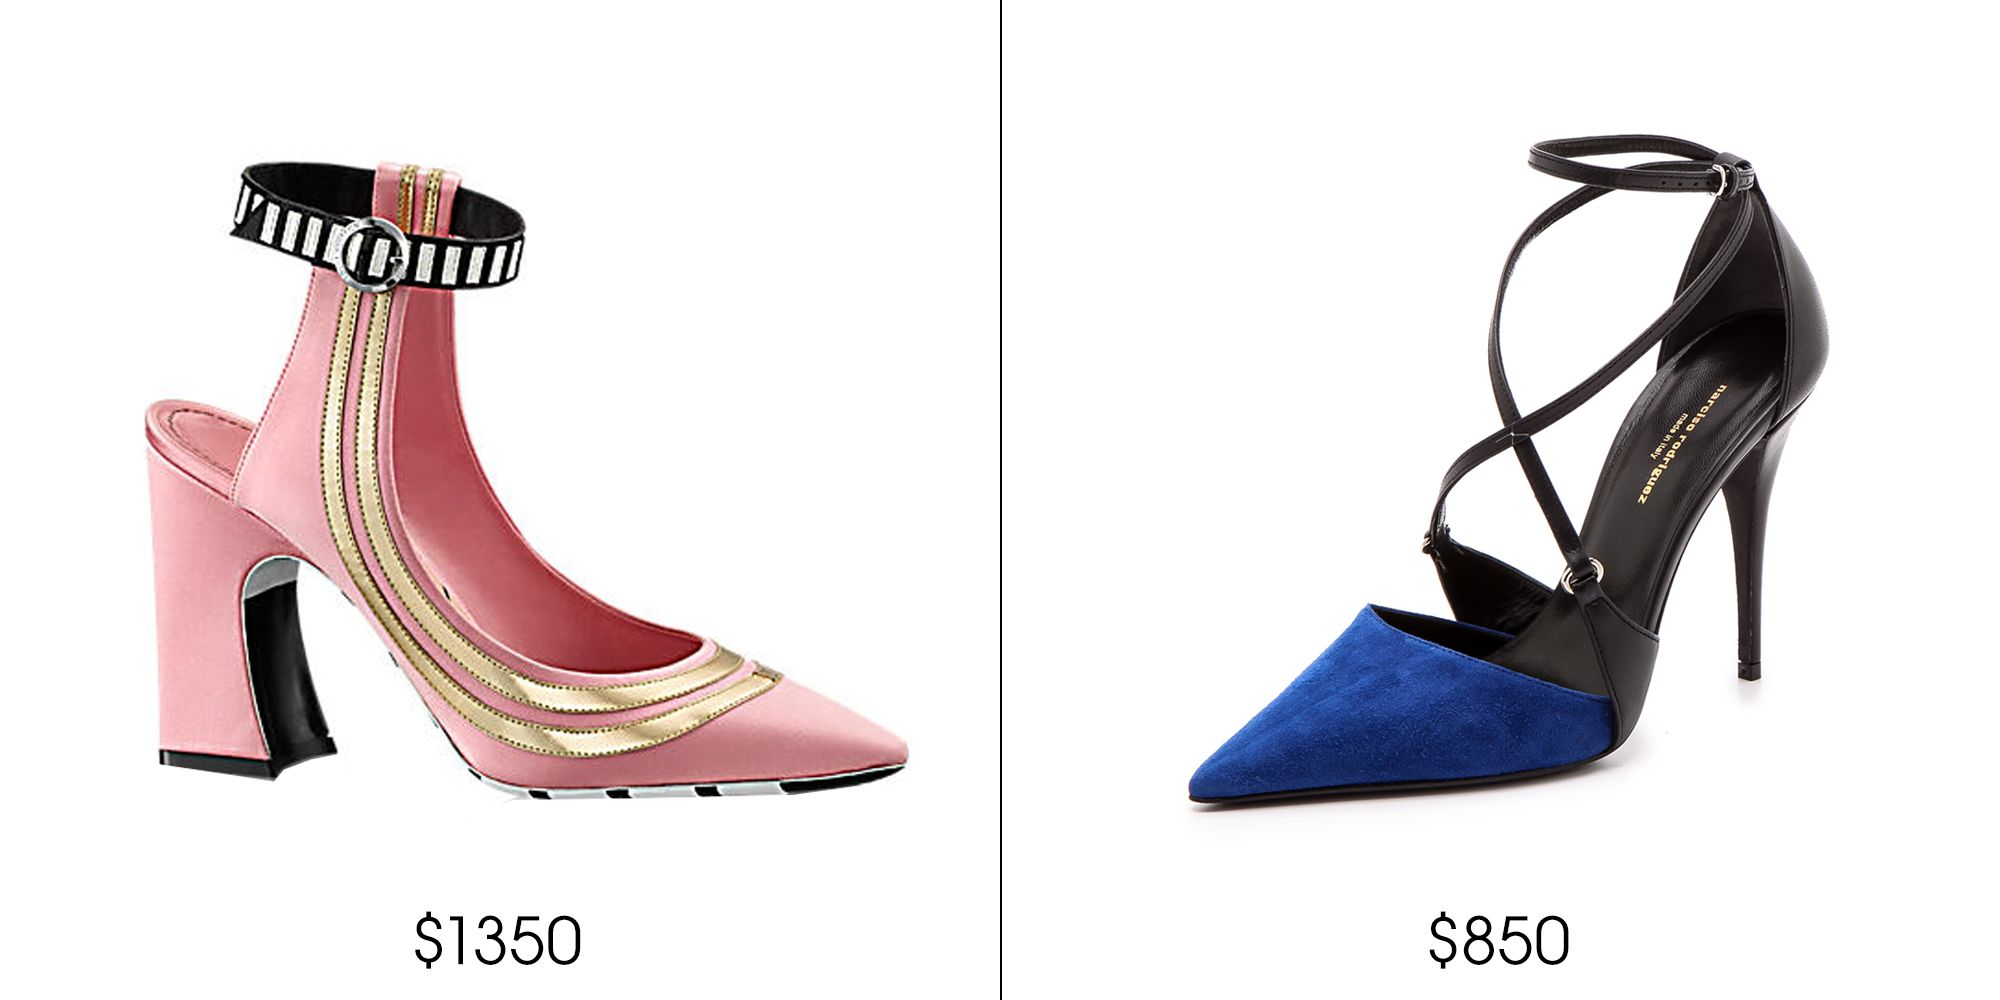 "Louis Vuitton Ray of Sun Pump, $1,350; <a href=""http://us.louisvuitton.com/eng-us/products/ray-of-sun-pump-009009"" target=""_blank"">louisvuitton.com</a>    Narciso Rodriguez Ava Strappy Pumps, $850; <a href=""http://www.shopbop.com/ava-strappy-pump-narciso-rodriguez/vp/v=1/1584901110.htm?folderID=34106&fm=other-shopbysize-viewall&colorId=37894"" target=""_blank"">shopbop.com</a>"